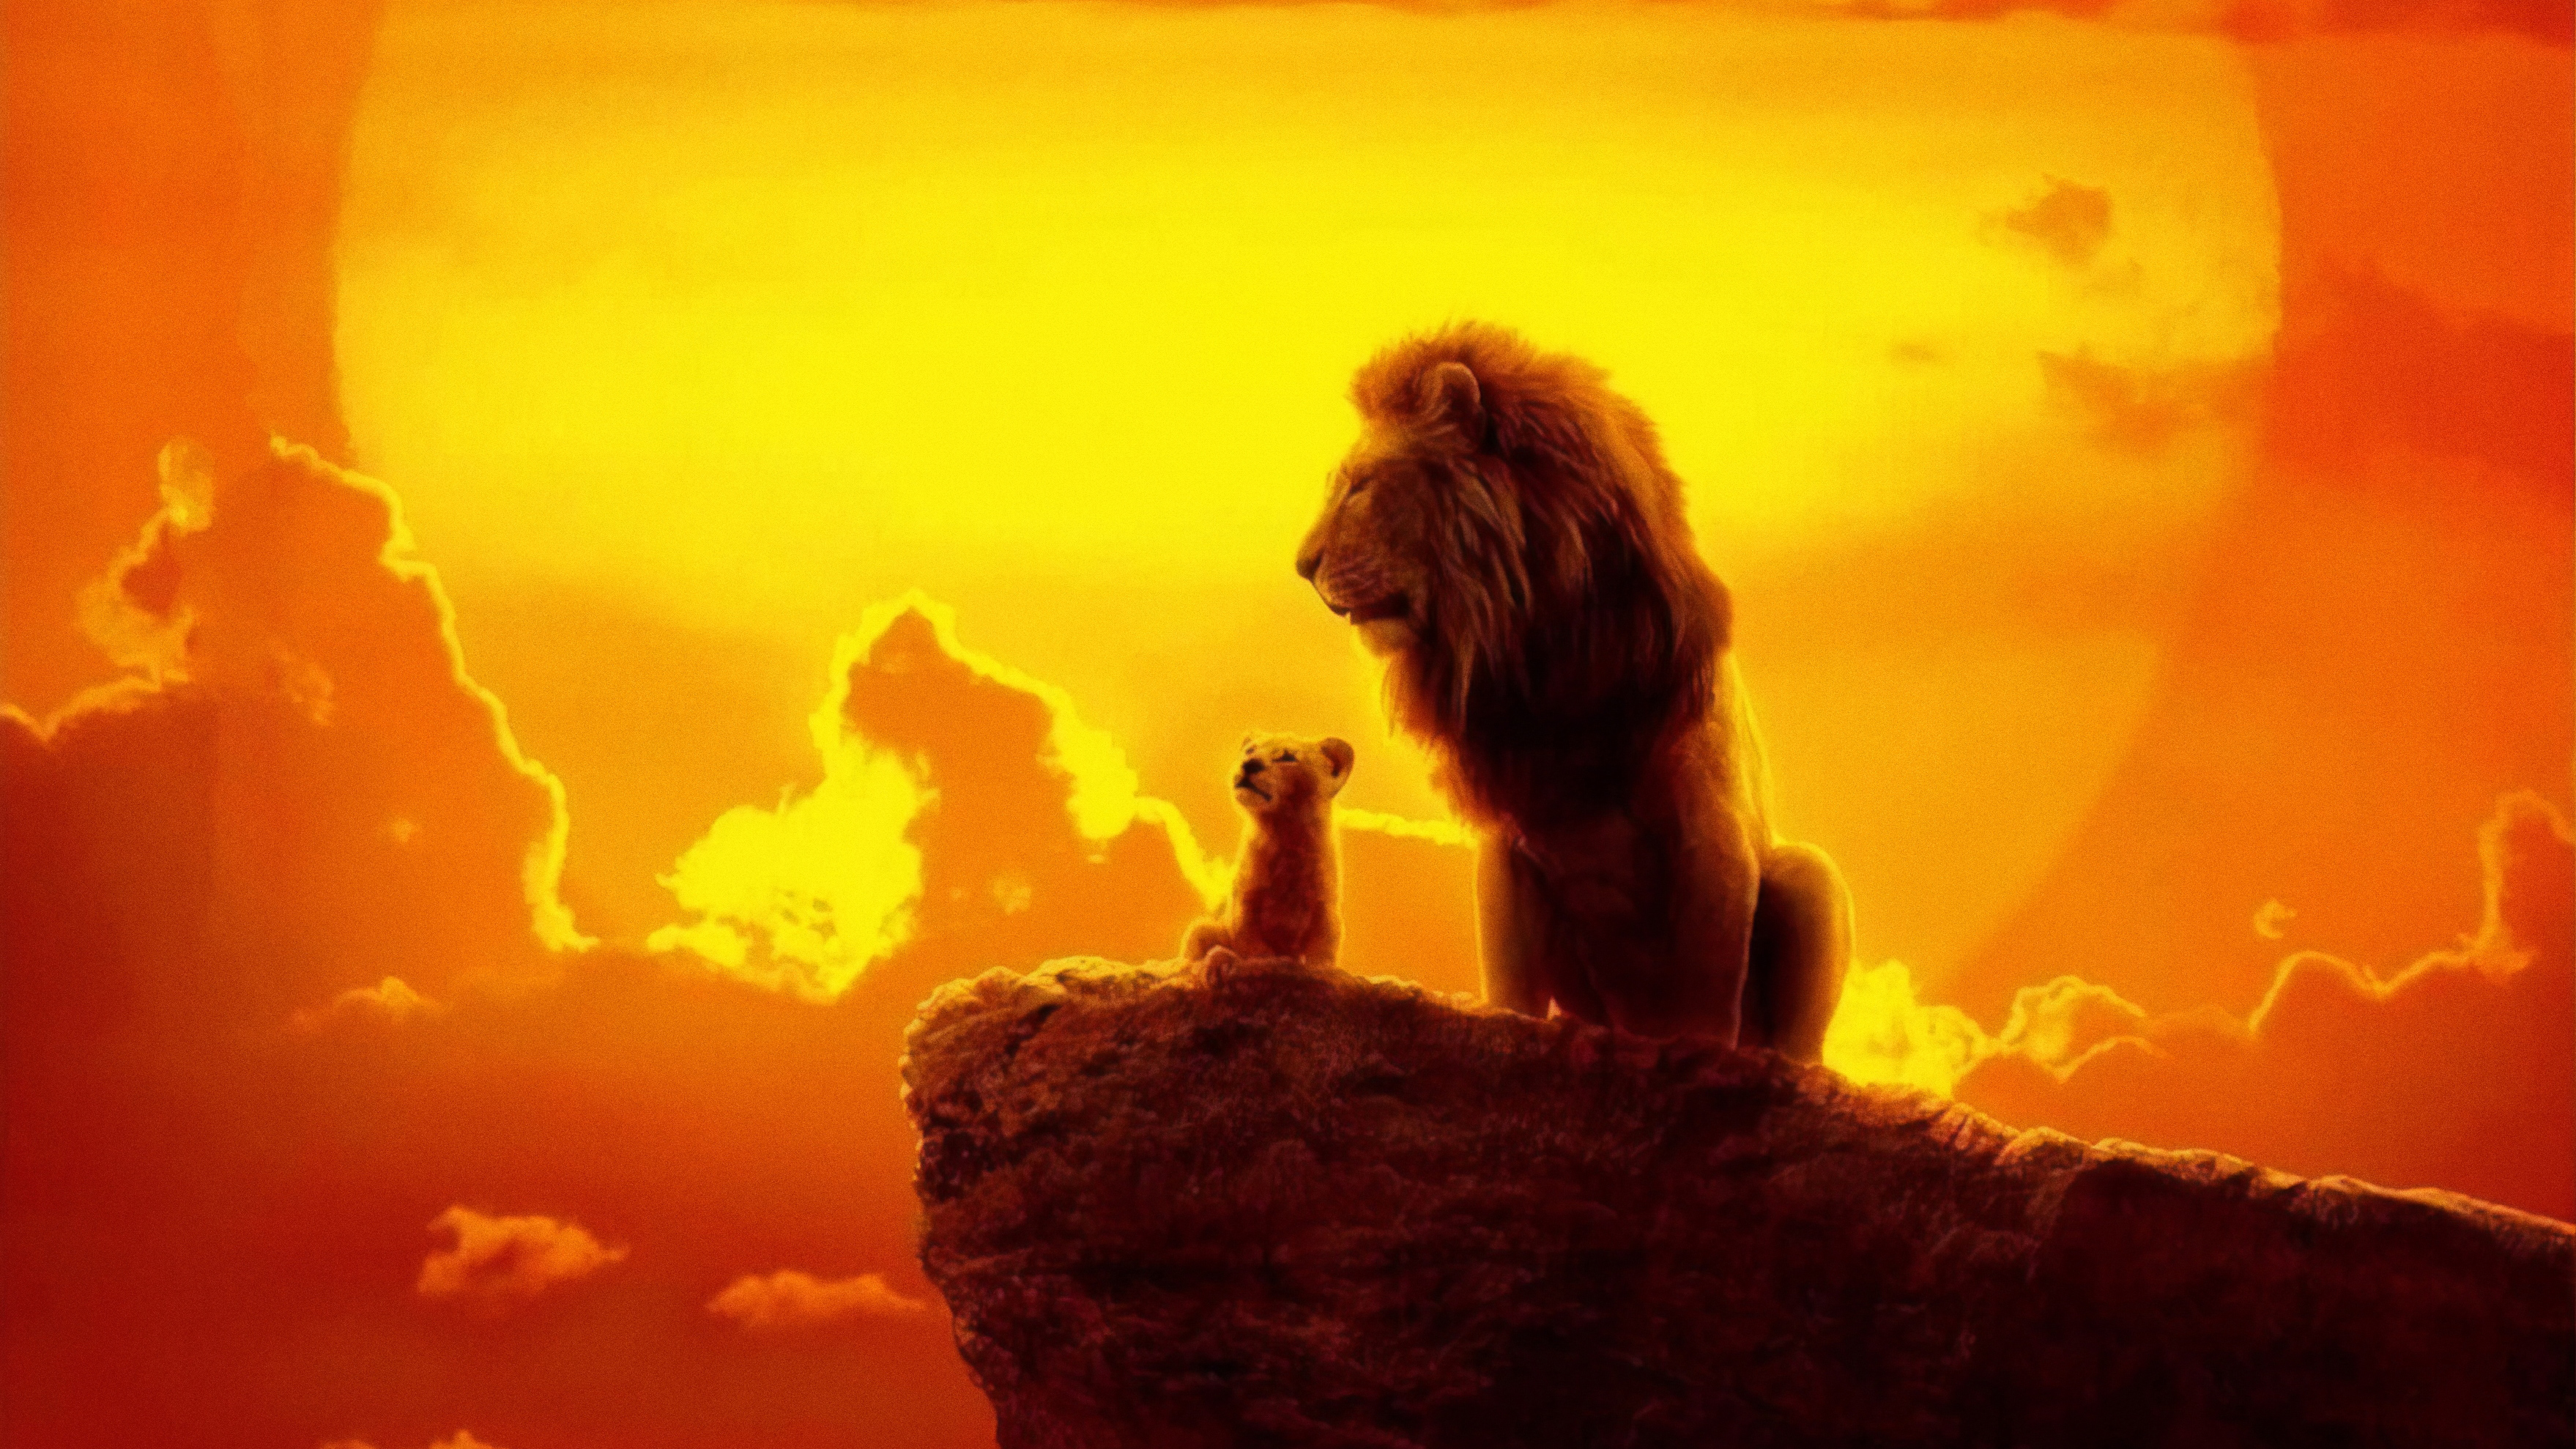 The Lion King 2019 4k Hd Movies 4k Wallpapers Images Backgrounds Photos And Pictures